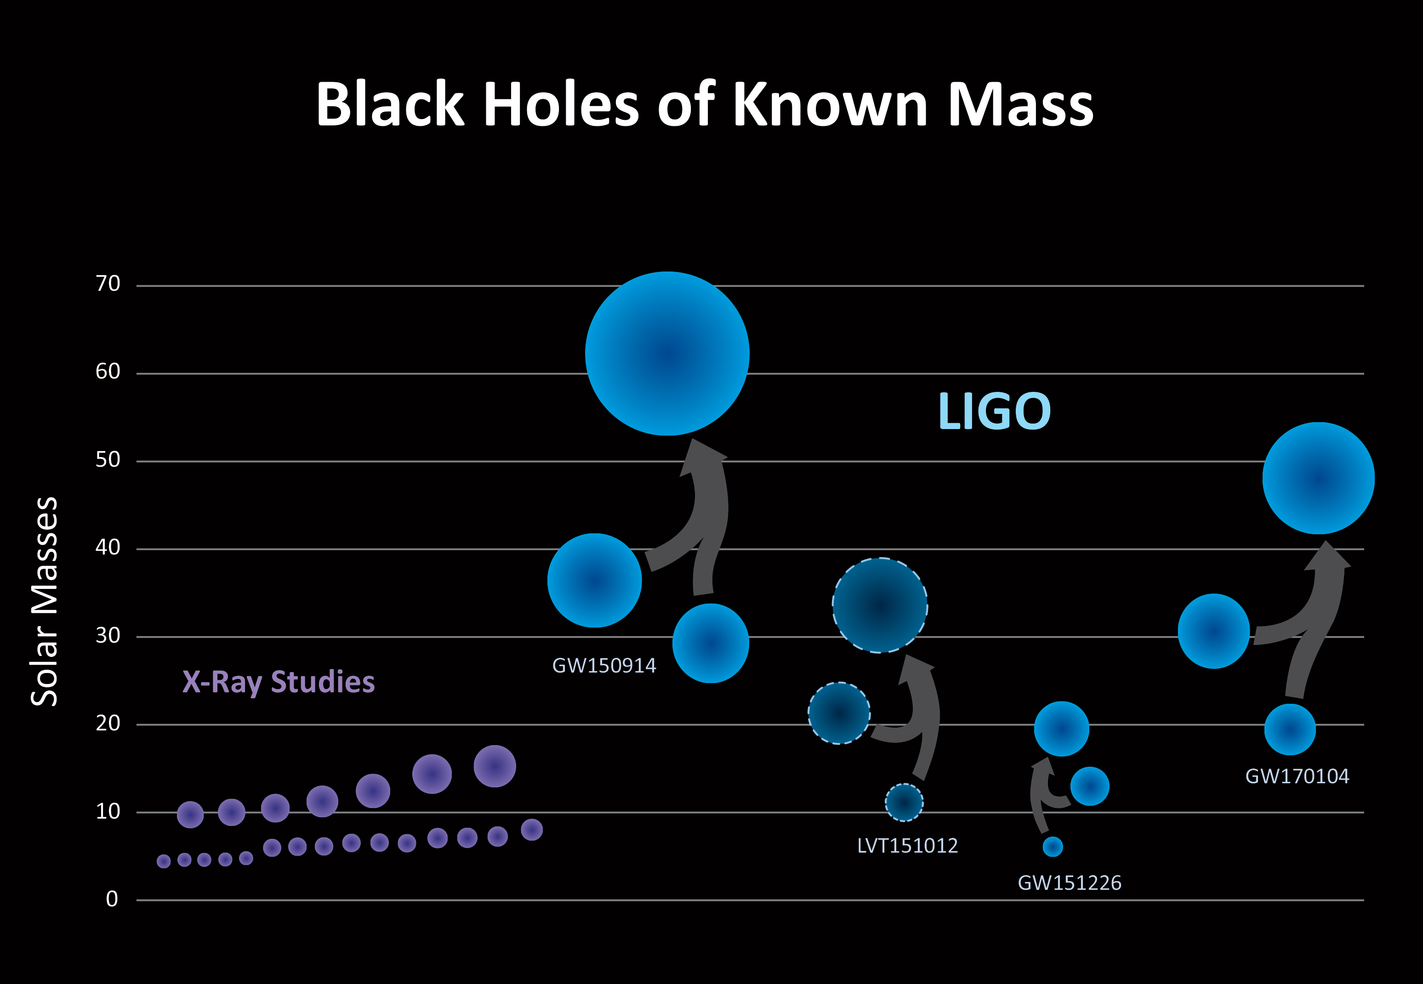 The three confirmed detections by LIGO (GW150914, GW151226, GW170104), and one lower-confidence detection (LVT151012), point to a population of stellar-mass binary black holes that, once merged, are larger than 20 solar masses – larger than what was known before. - Image Credit: LIGO/Caltech/Sonoma State (Aurore Simonnet), CC BY-ND